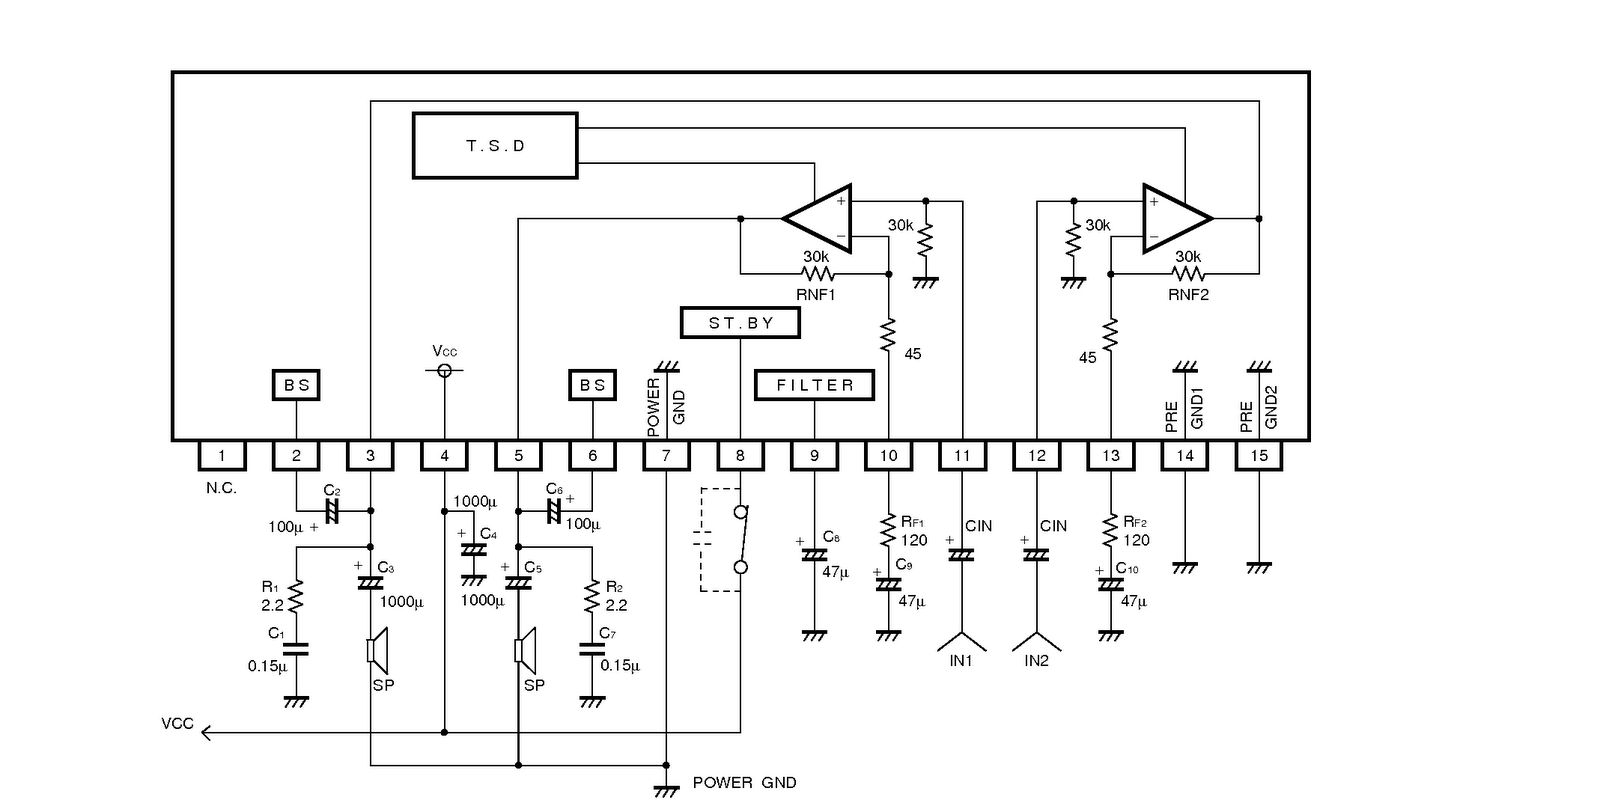 ba5417 stereo power amplifier circuit